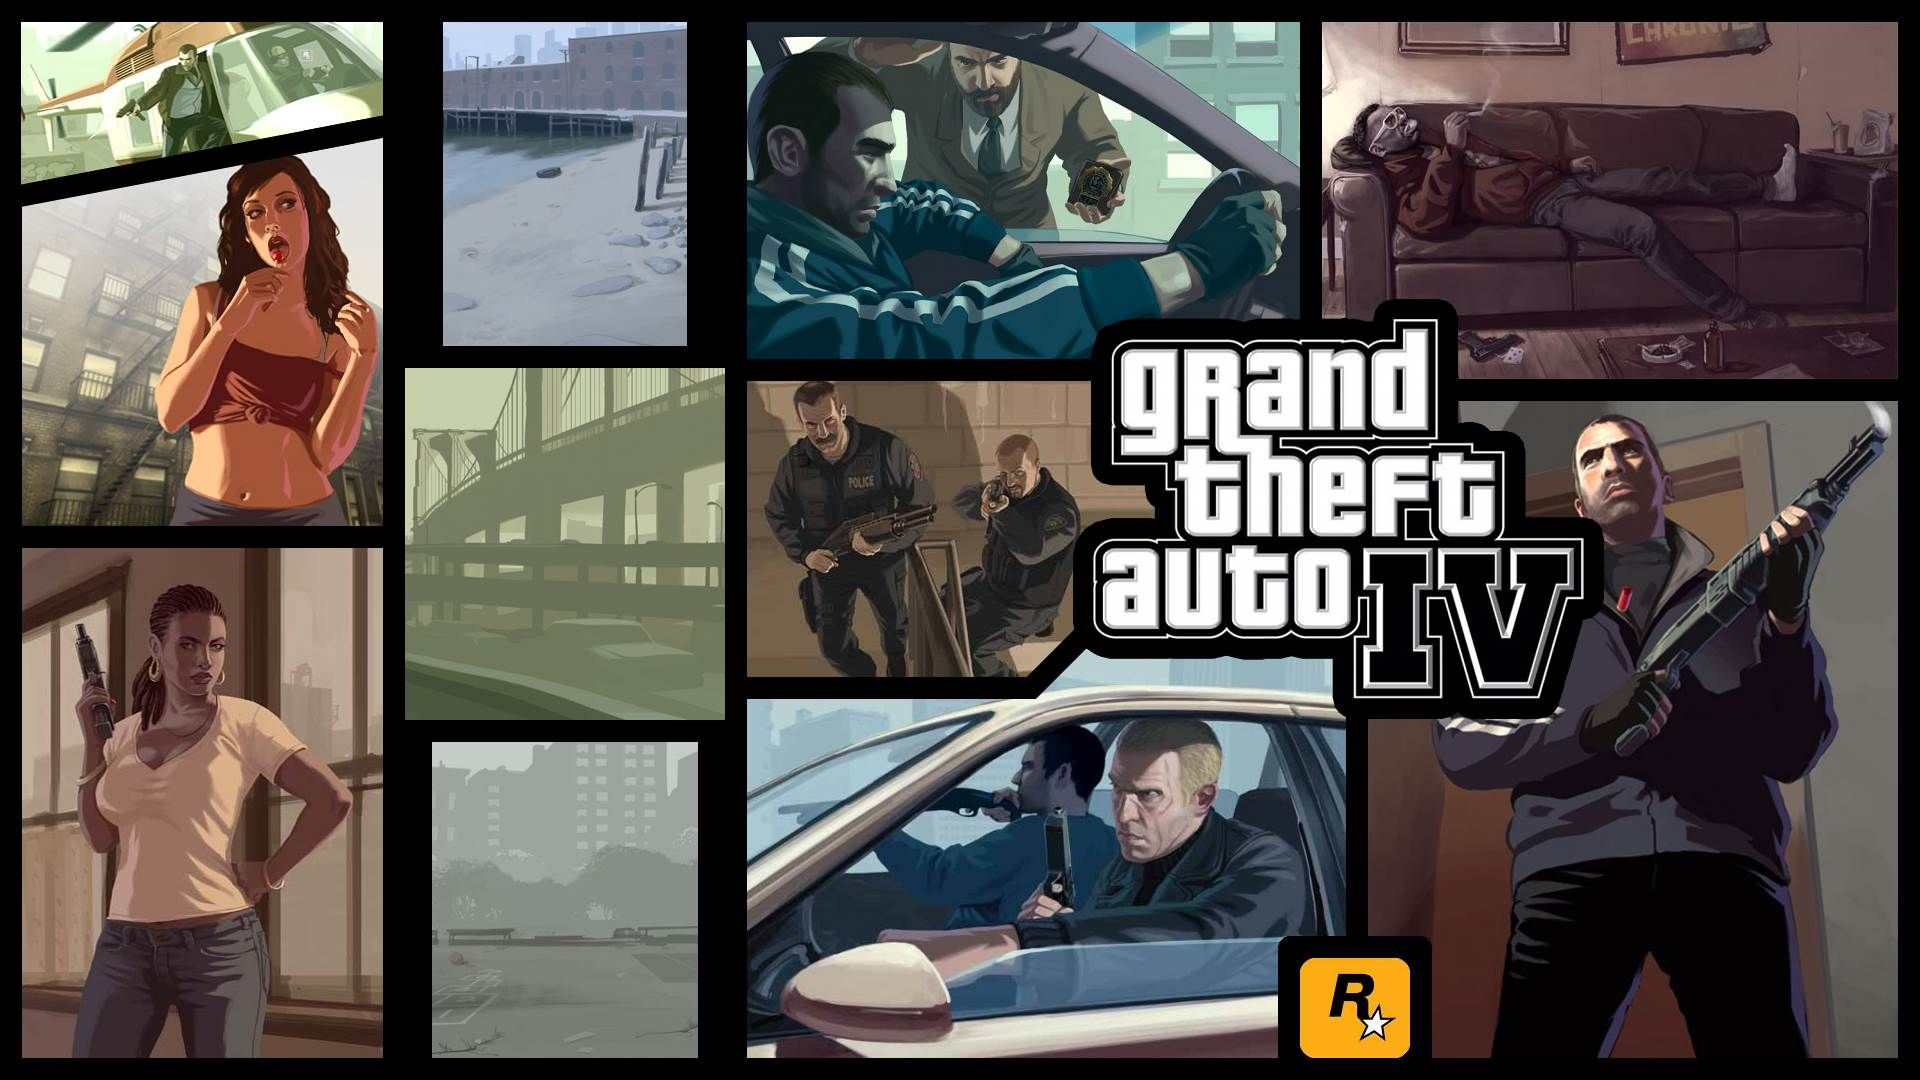 Desktop Wallpaper Gta Iv Wallpaper X Gta Iv Adorable Wallpapers